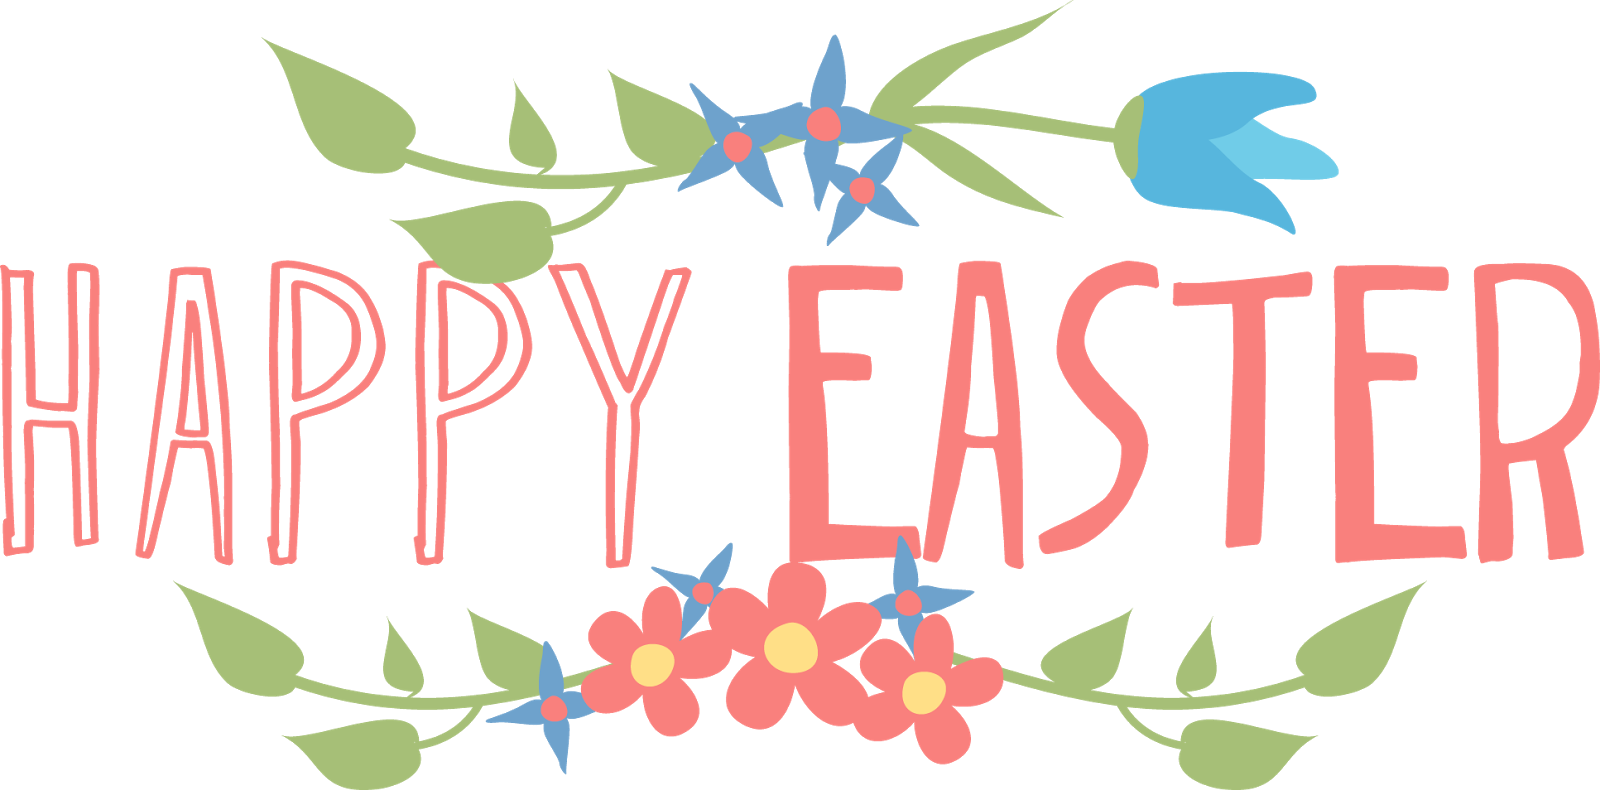 Happy easter png different font. Text